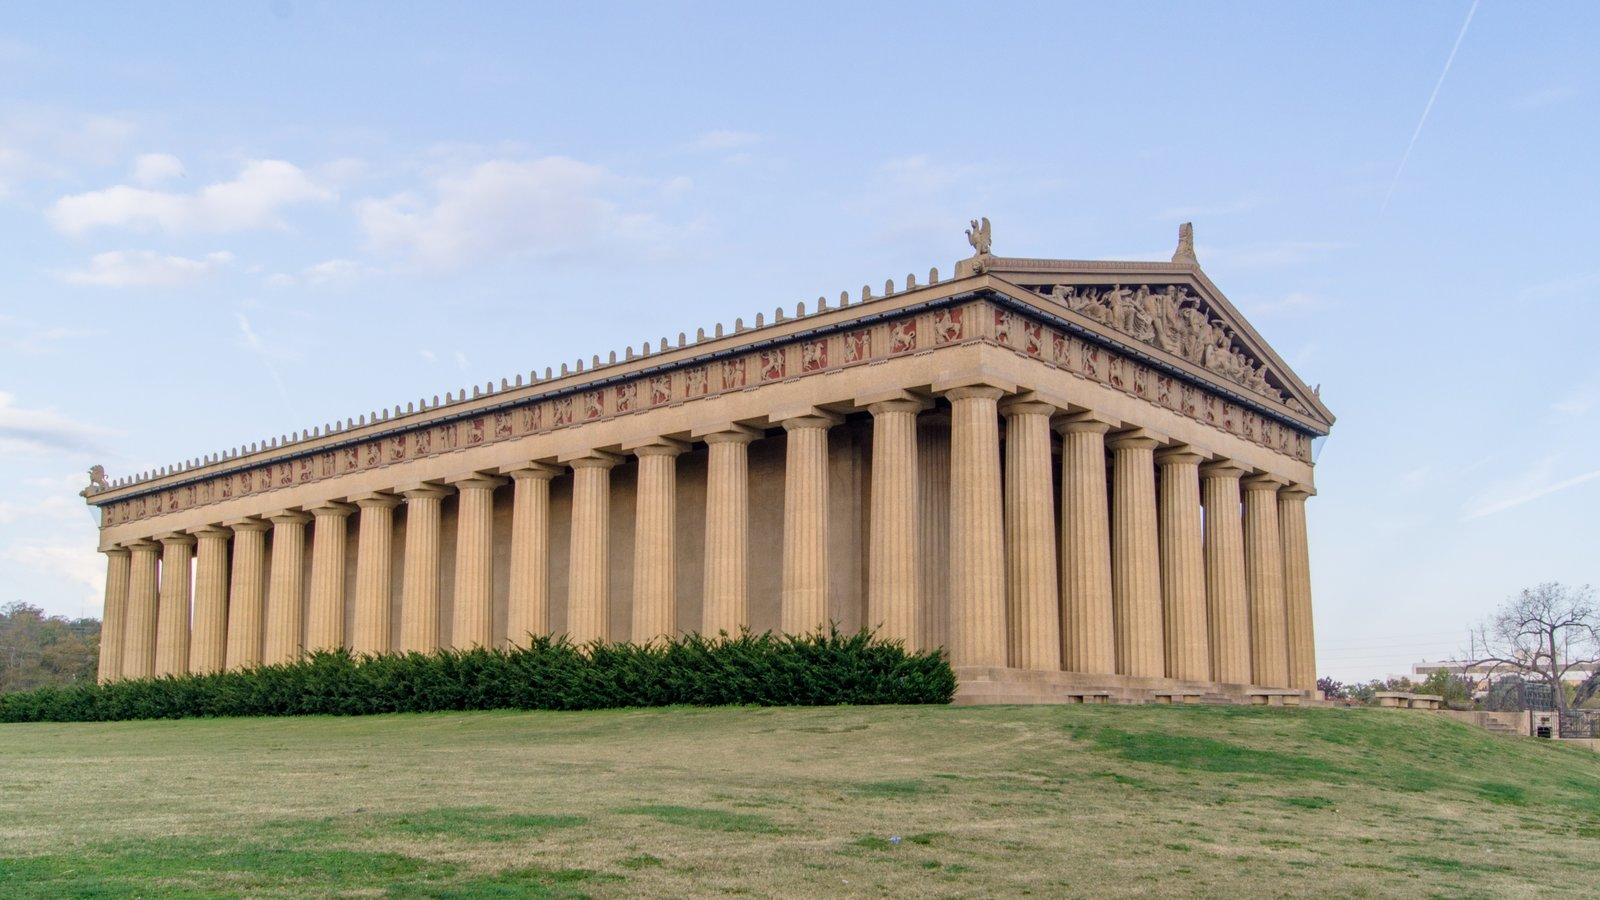 Parthenon showing a castle and heritage architecture